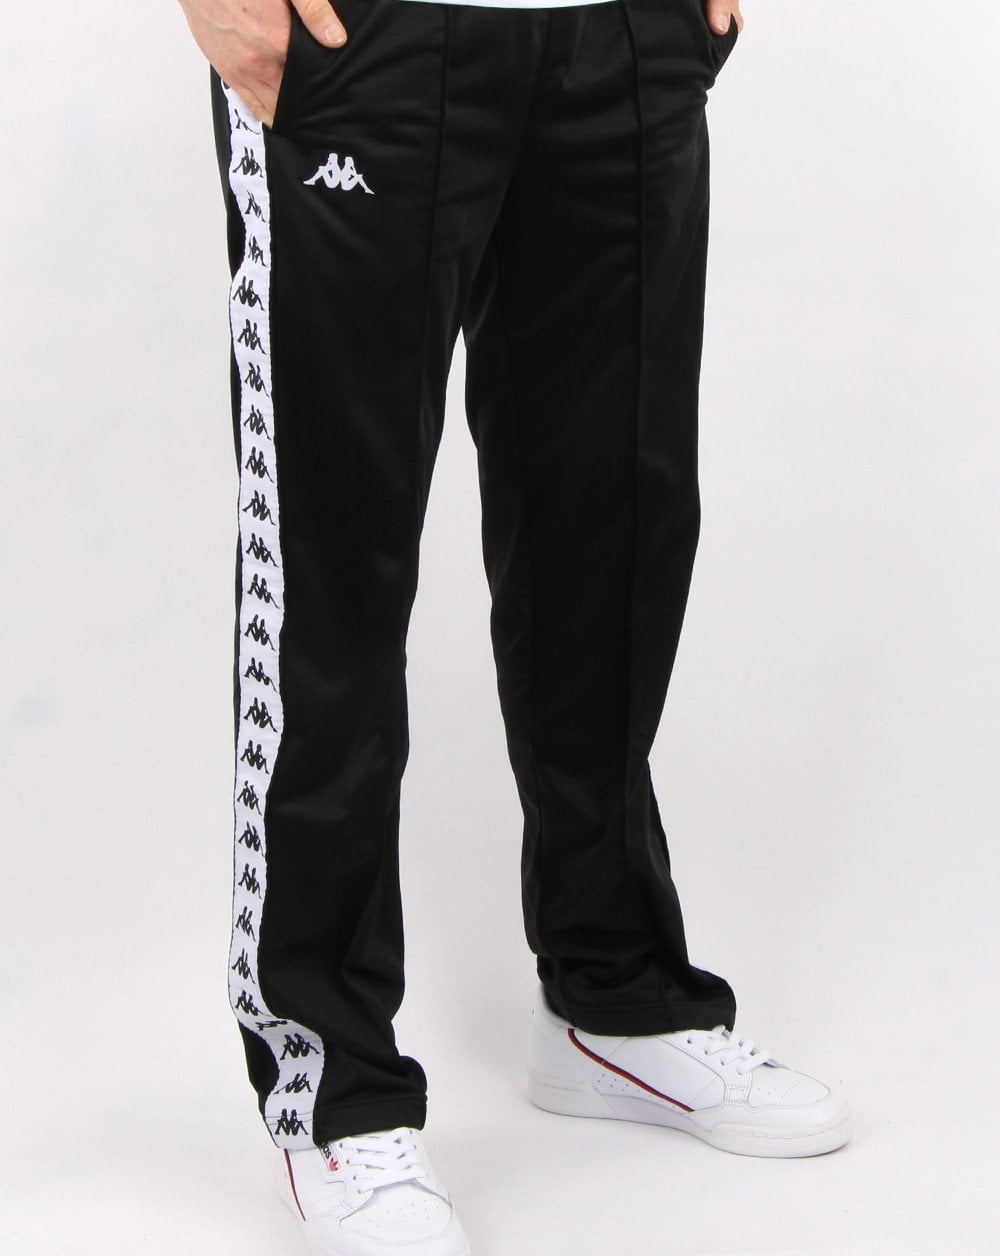 be4765232d Kappa Astoria Track Pants Black/white